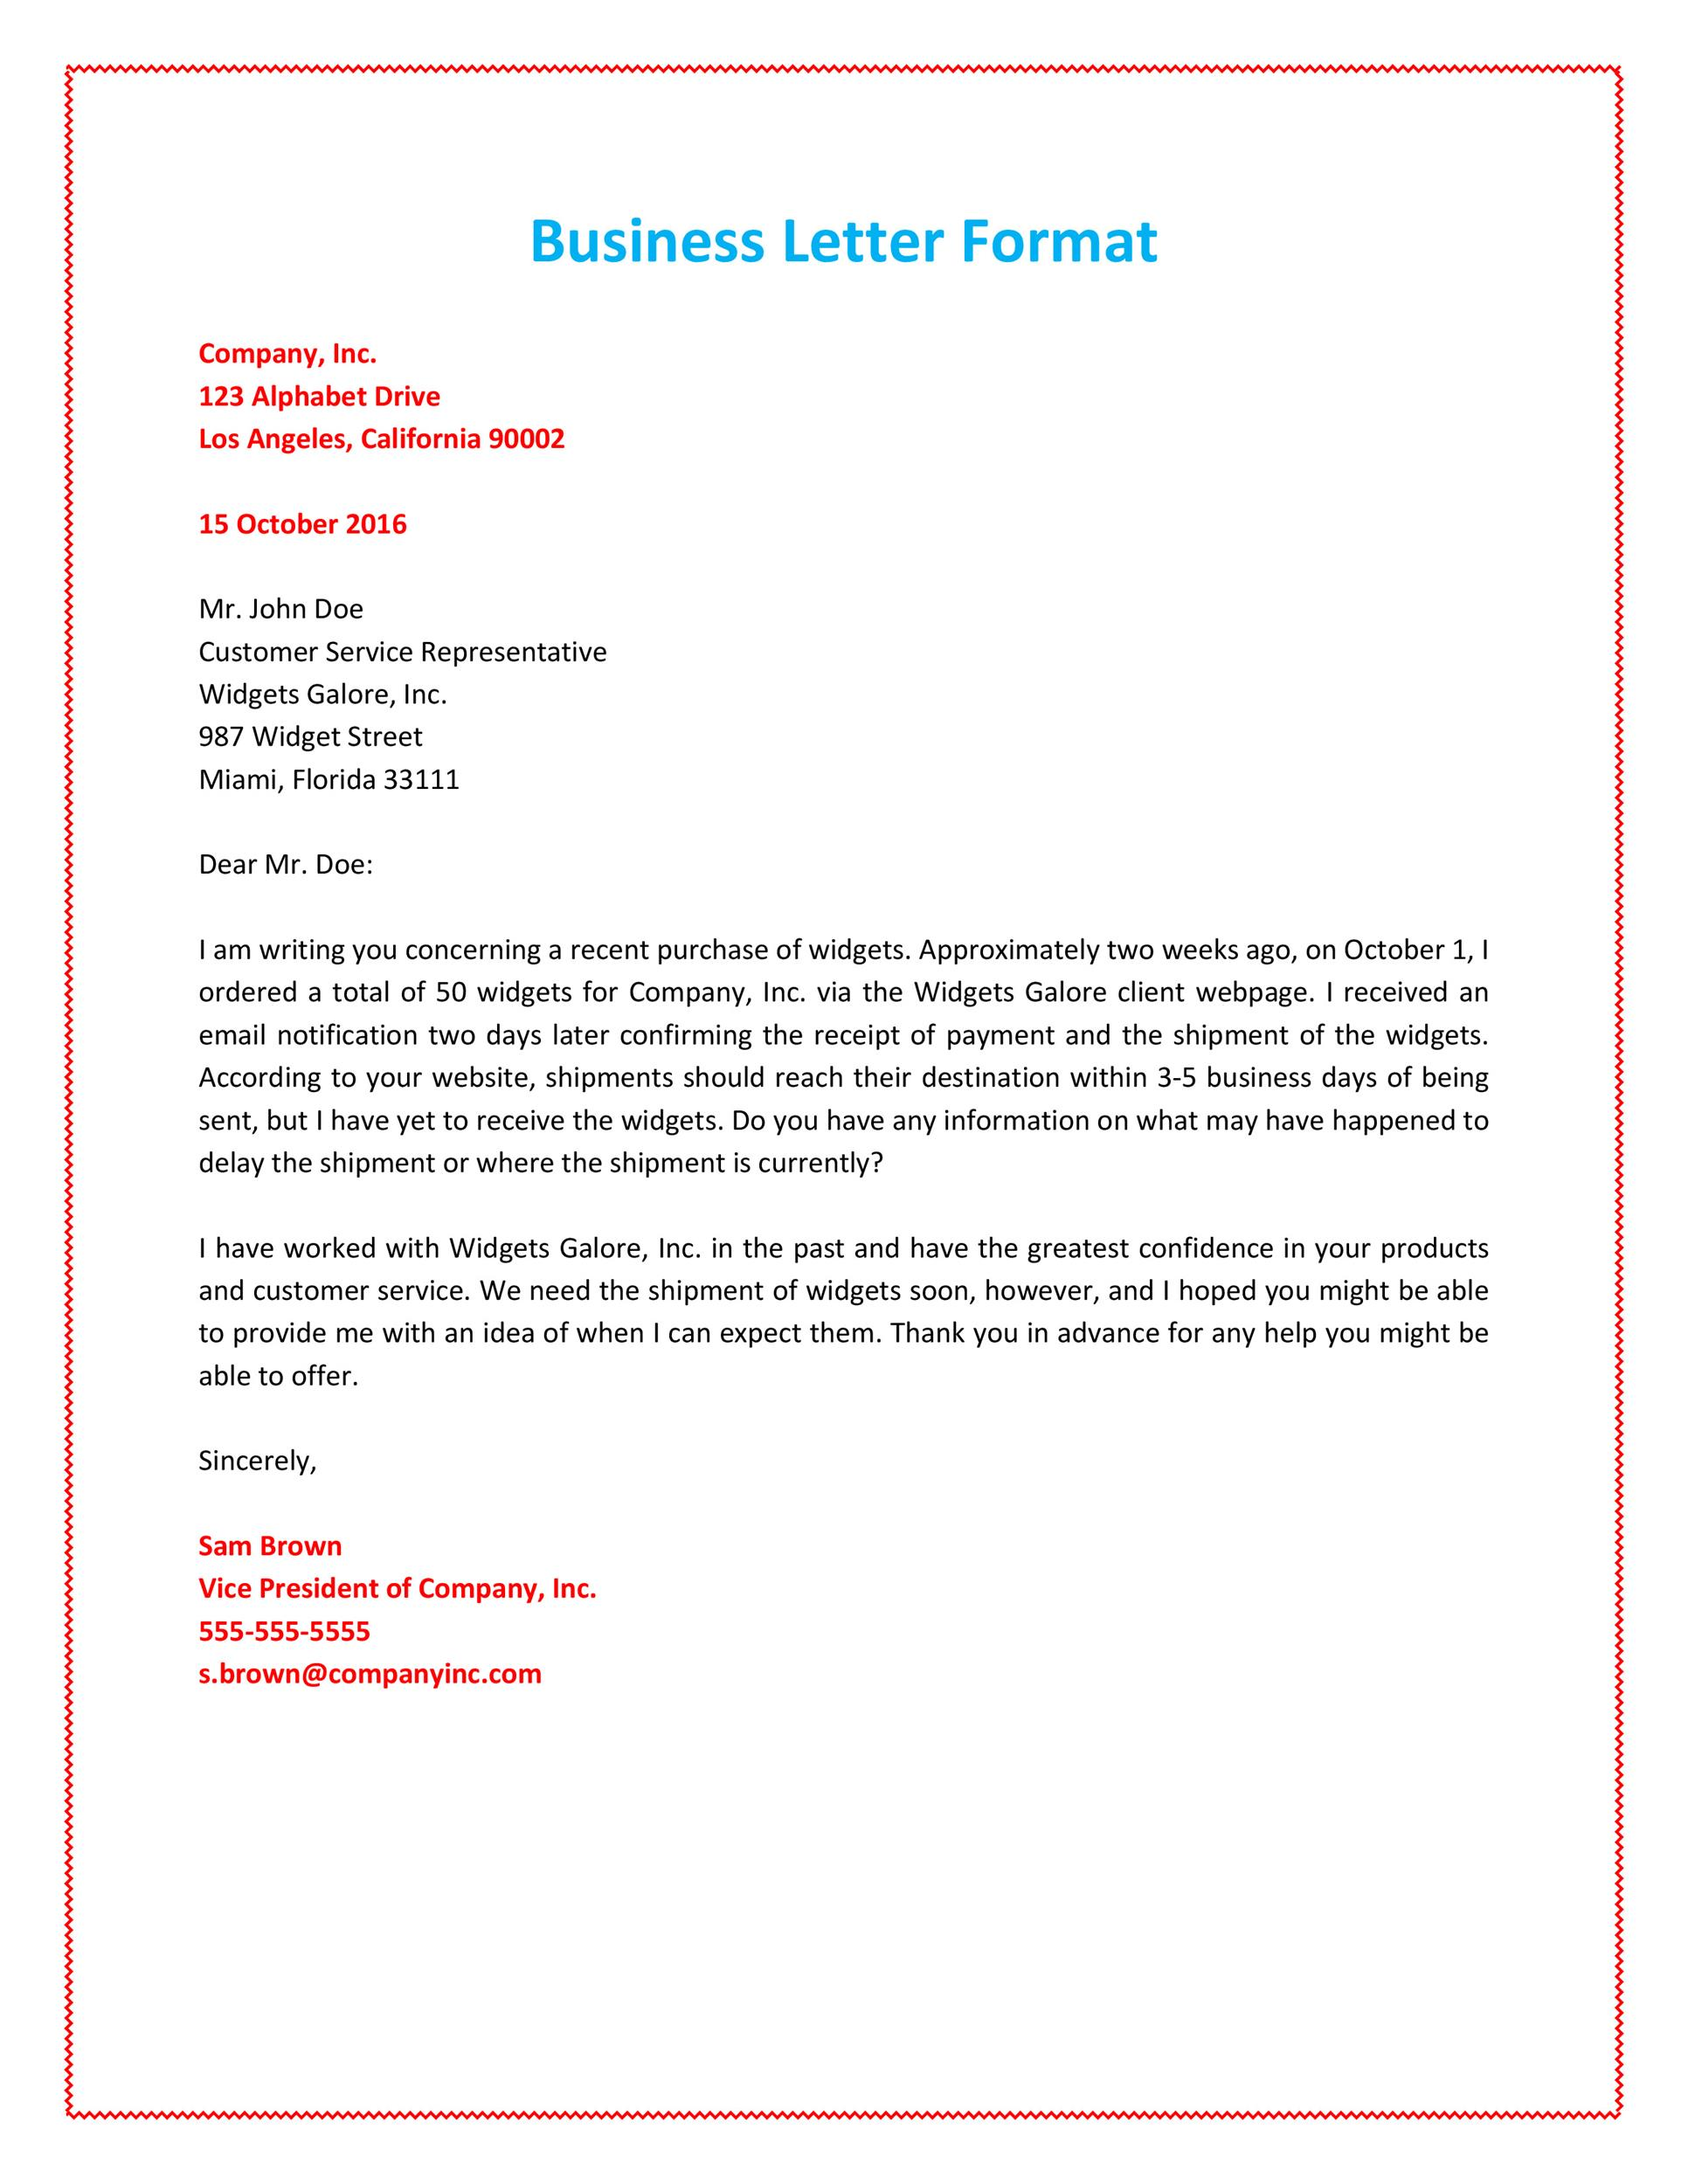 35 formal business letter format templates examples template lab business letter format example spiritdancerdesigns Choice Image